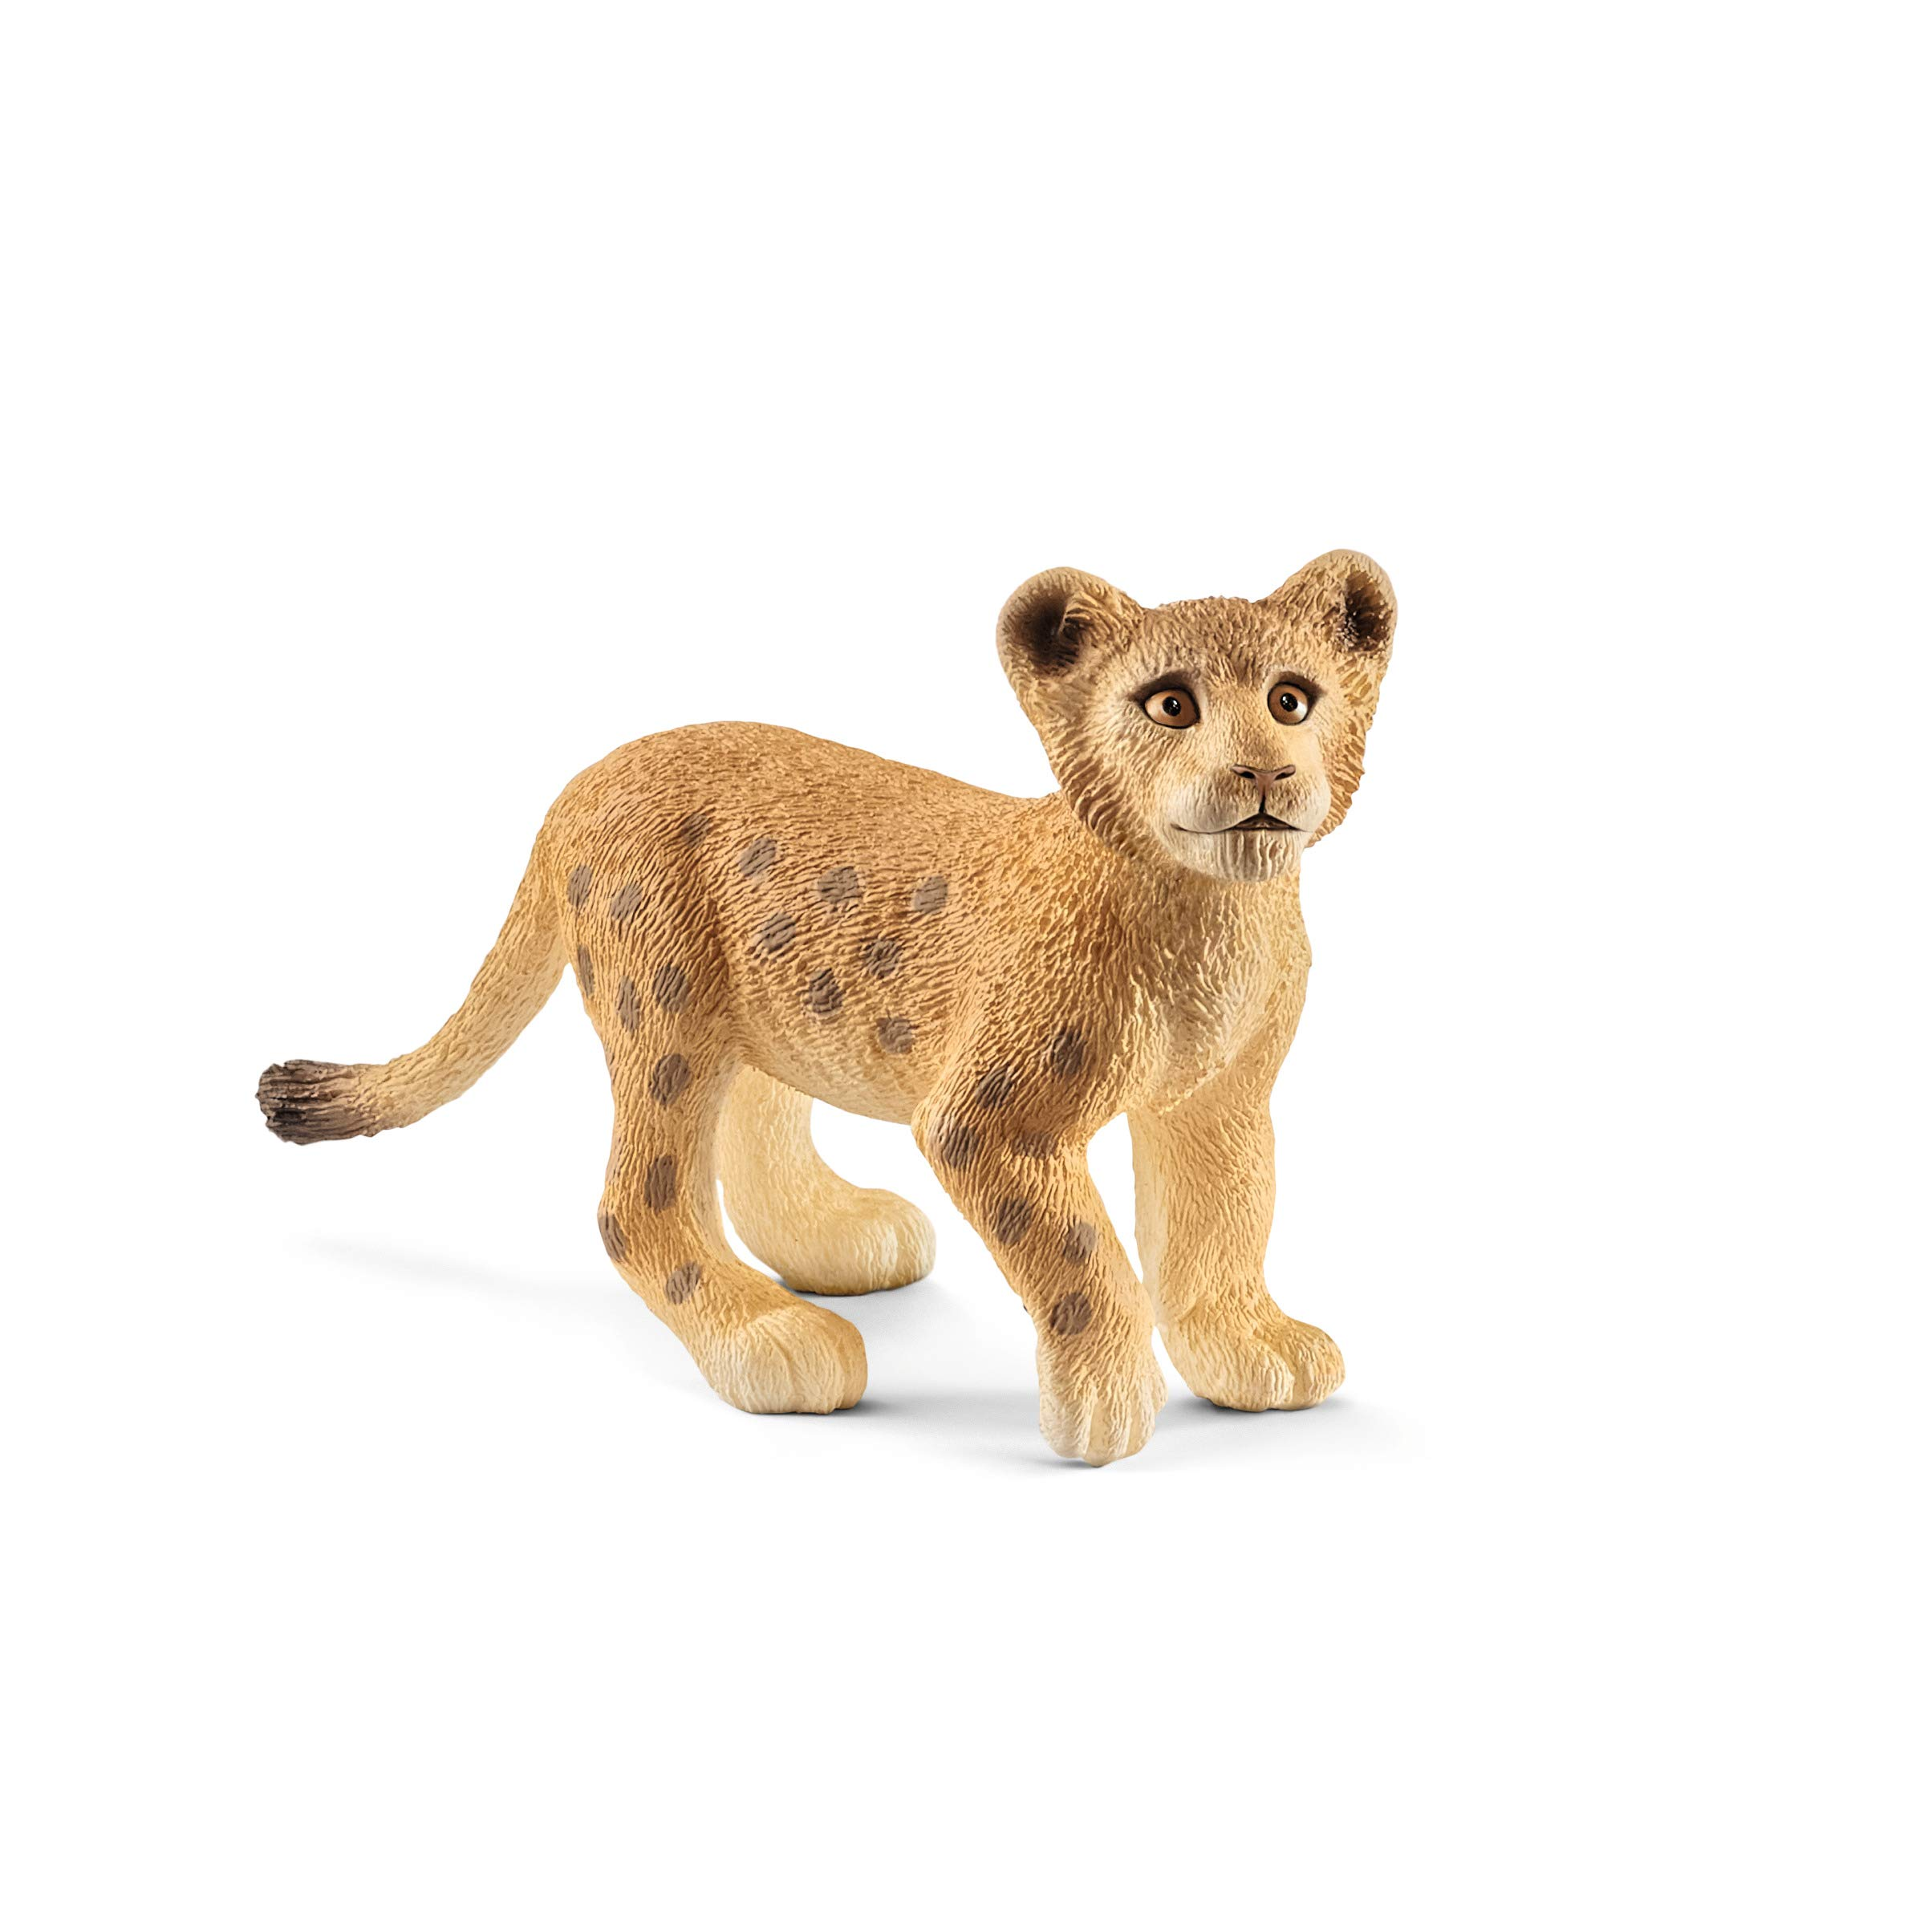 SCHLEICH Wild Life, Animal Figurine, Animal Toys for Boys and Girls 3-8 Years Old, Lion Cub